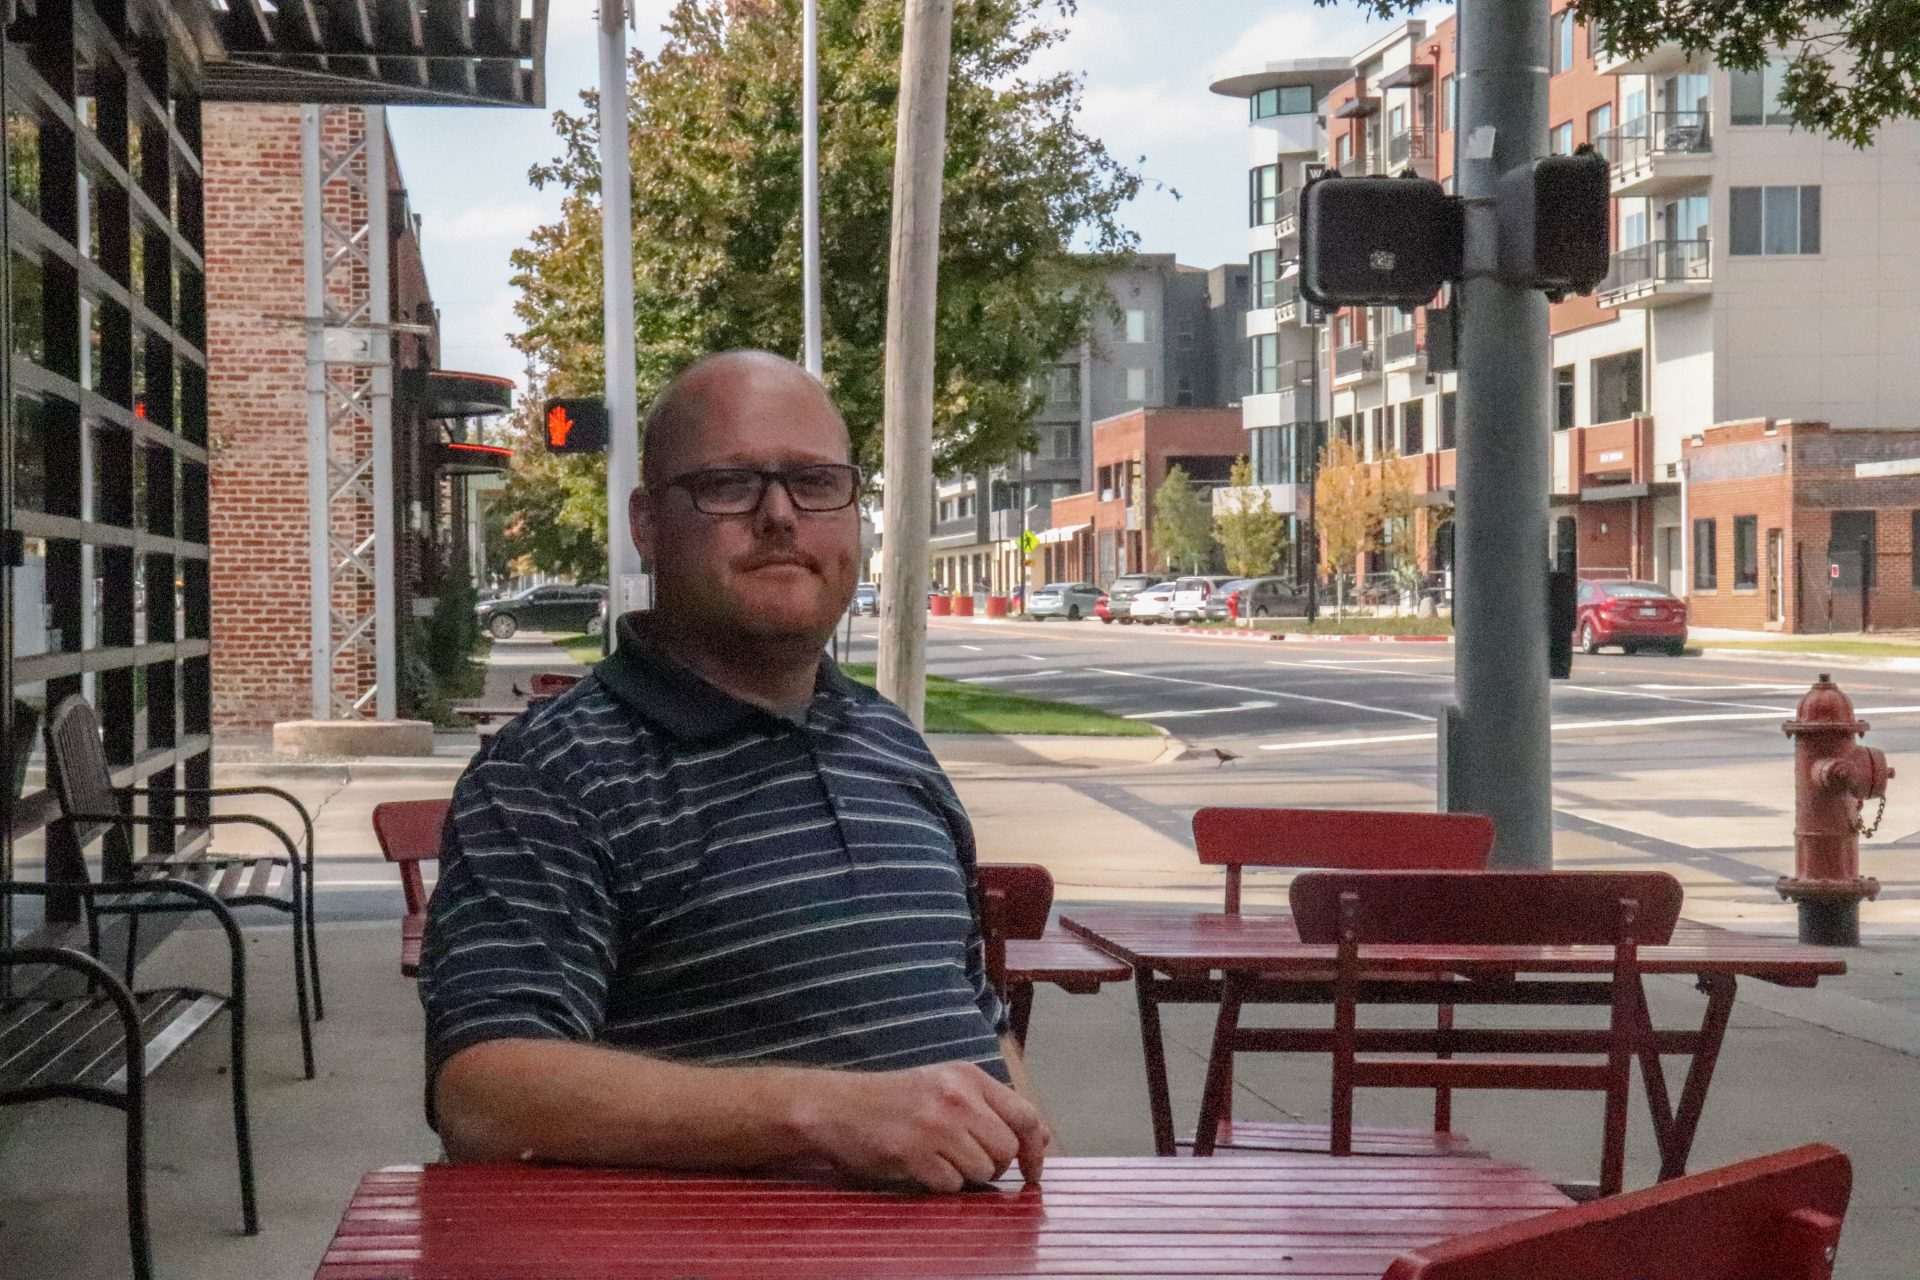 Jason Hanan sits at a red table in downtown Oklahoma City.